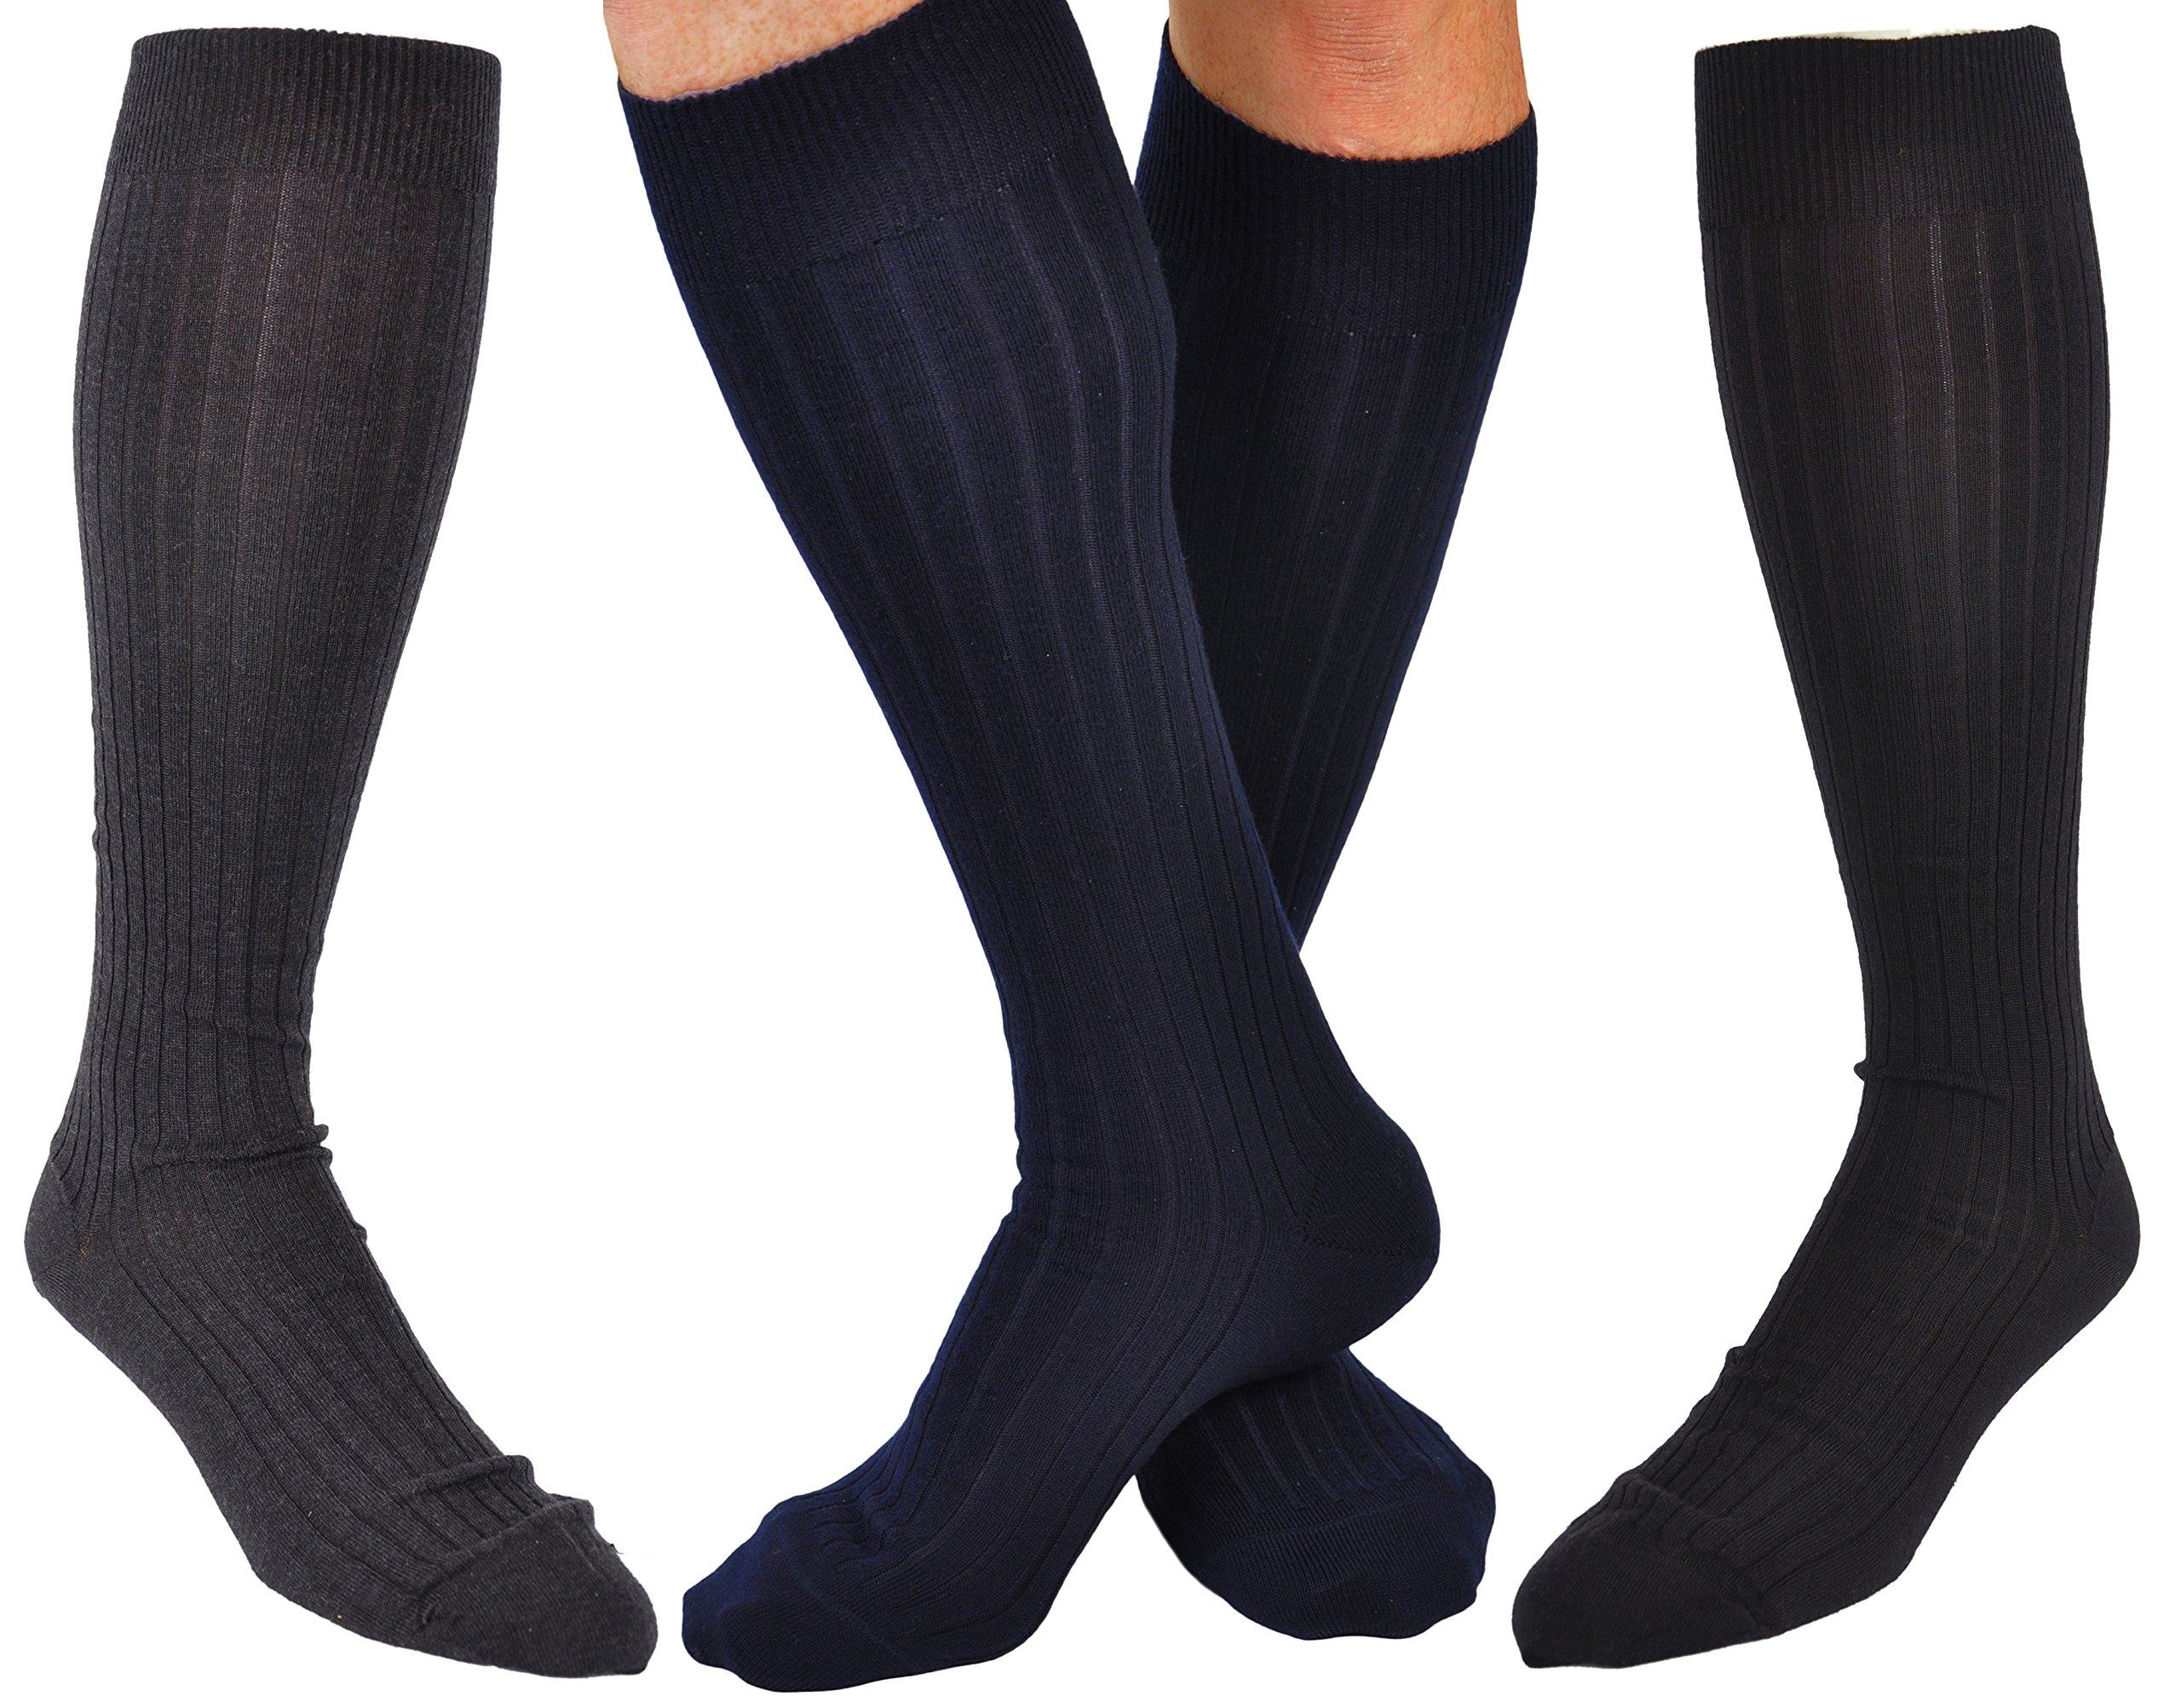 12 Pairs Men's ExtraFine Merino Marcoliani O.T.C. Italian Dress Socks: 4 Navy, 4 Black, 4 Charcoal